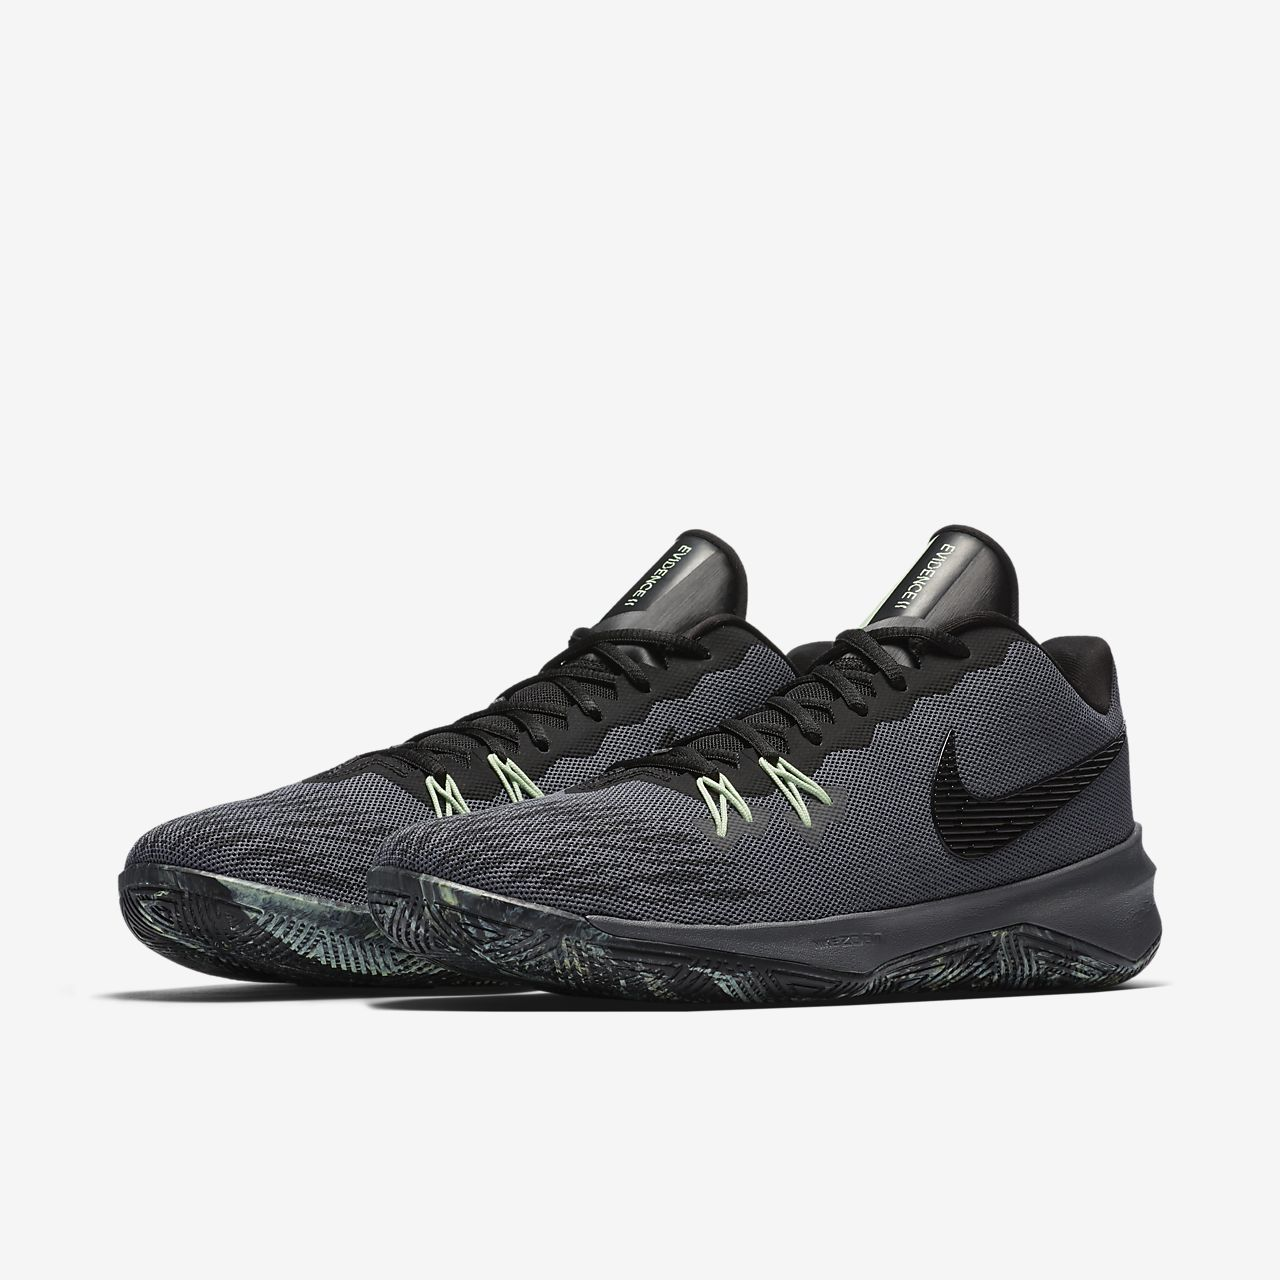 nike zoom evidence 2 review